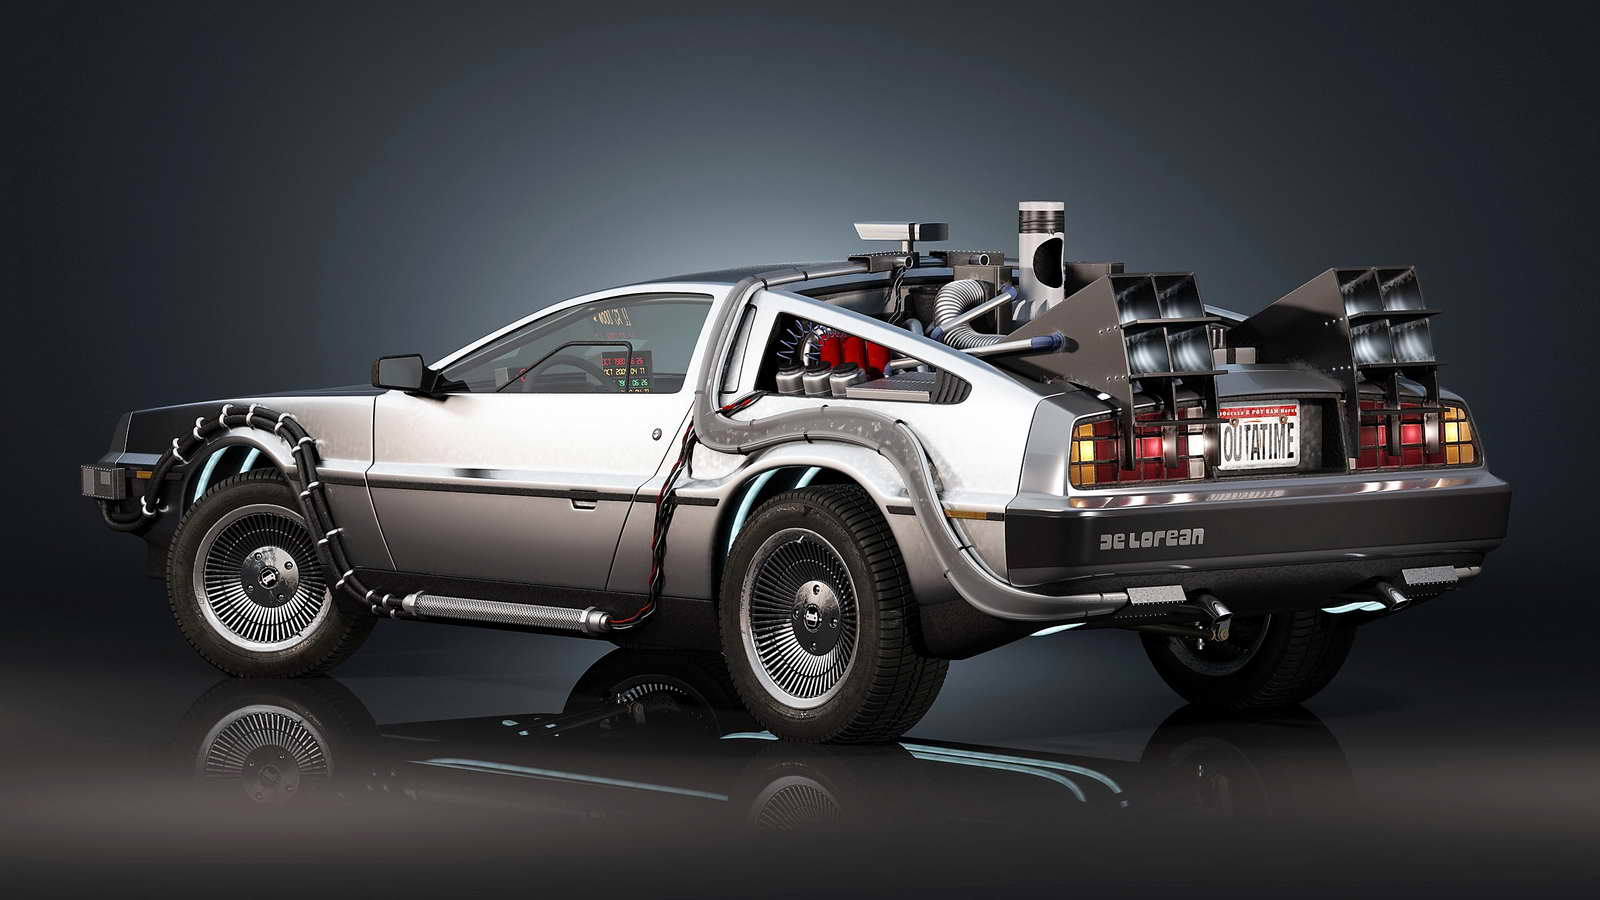 DeLorean_DMC_12_Back_to_the_Future_01